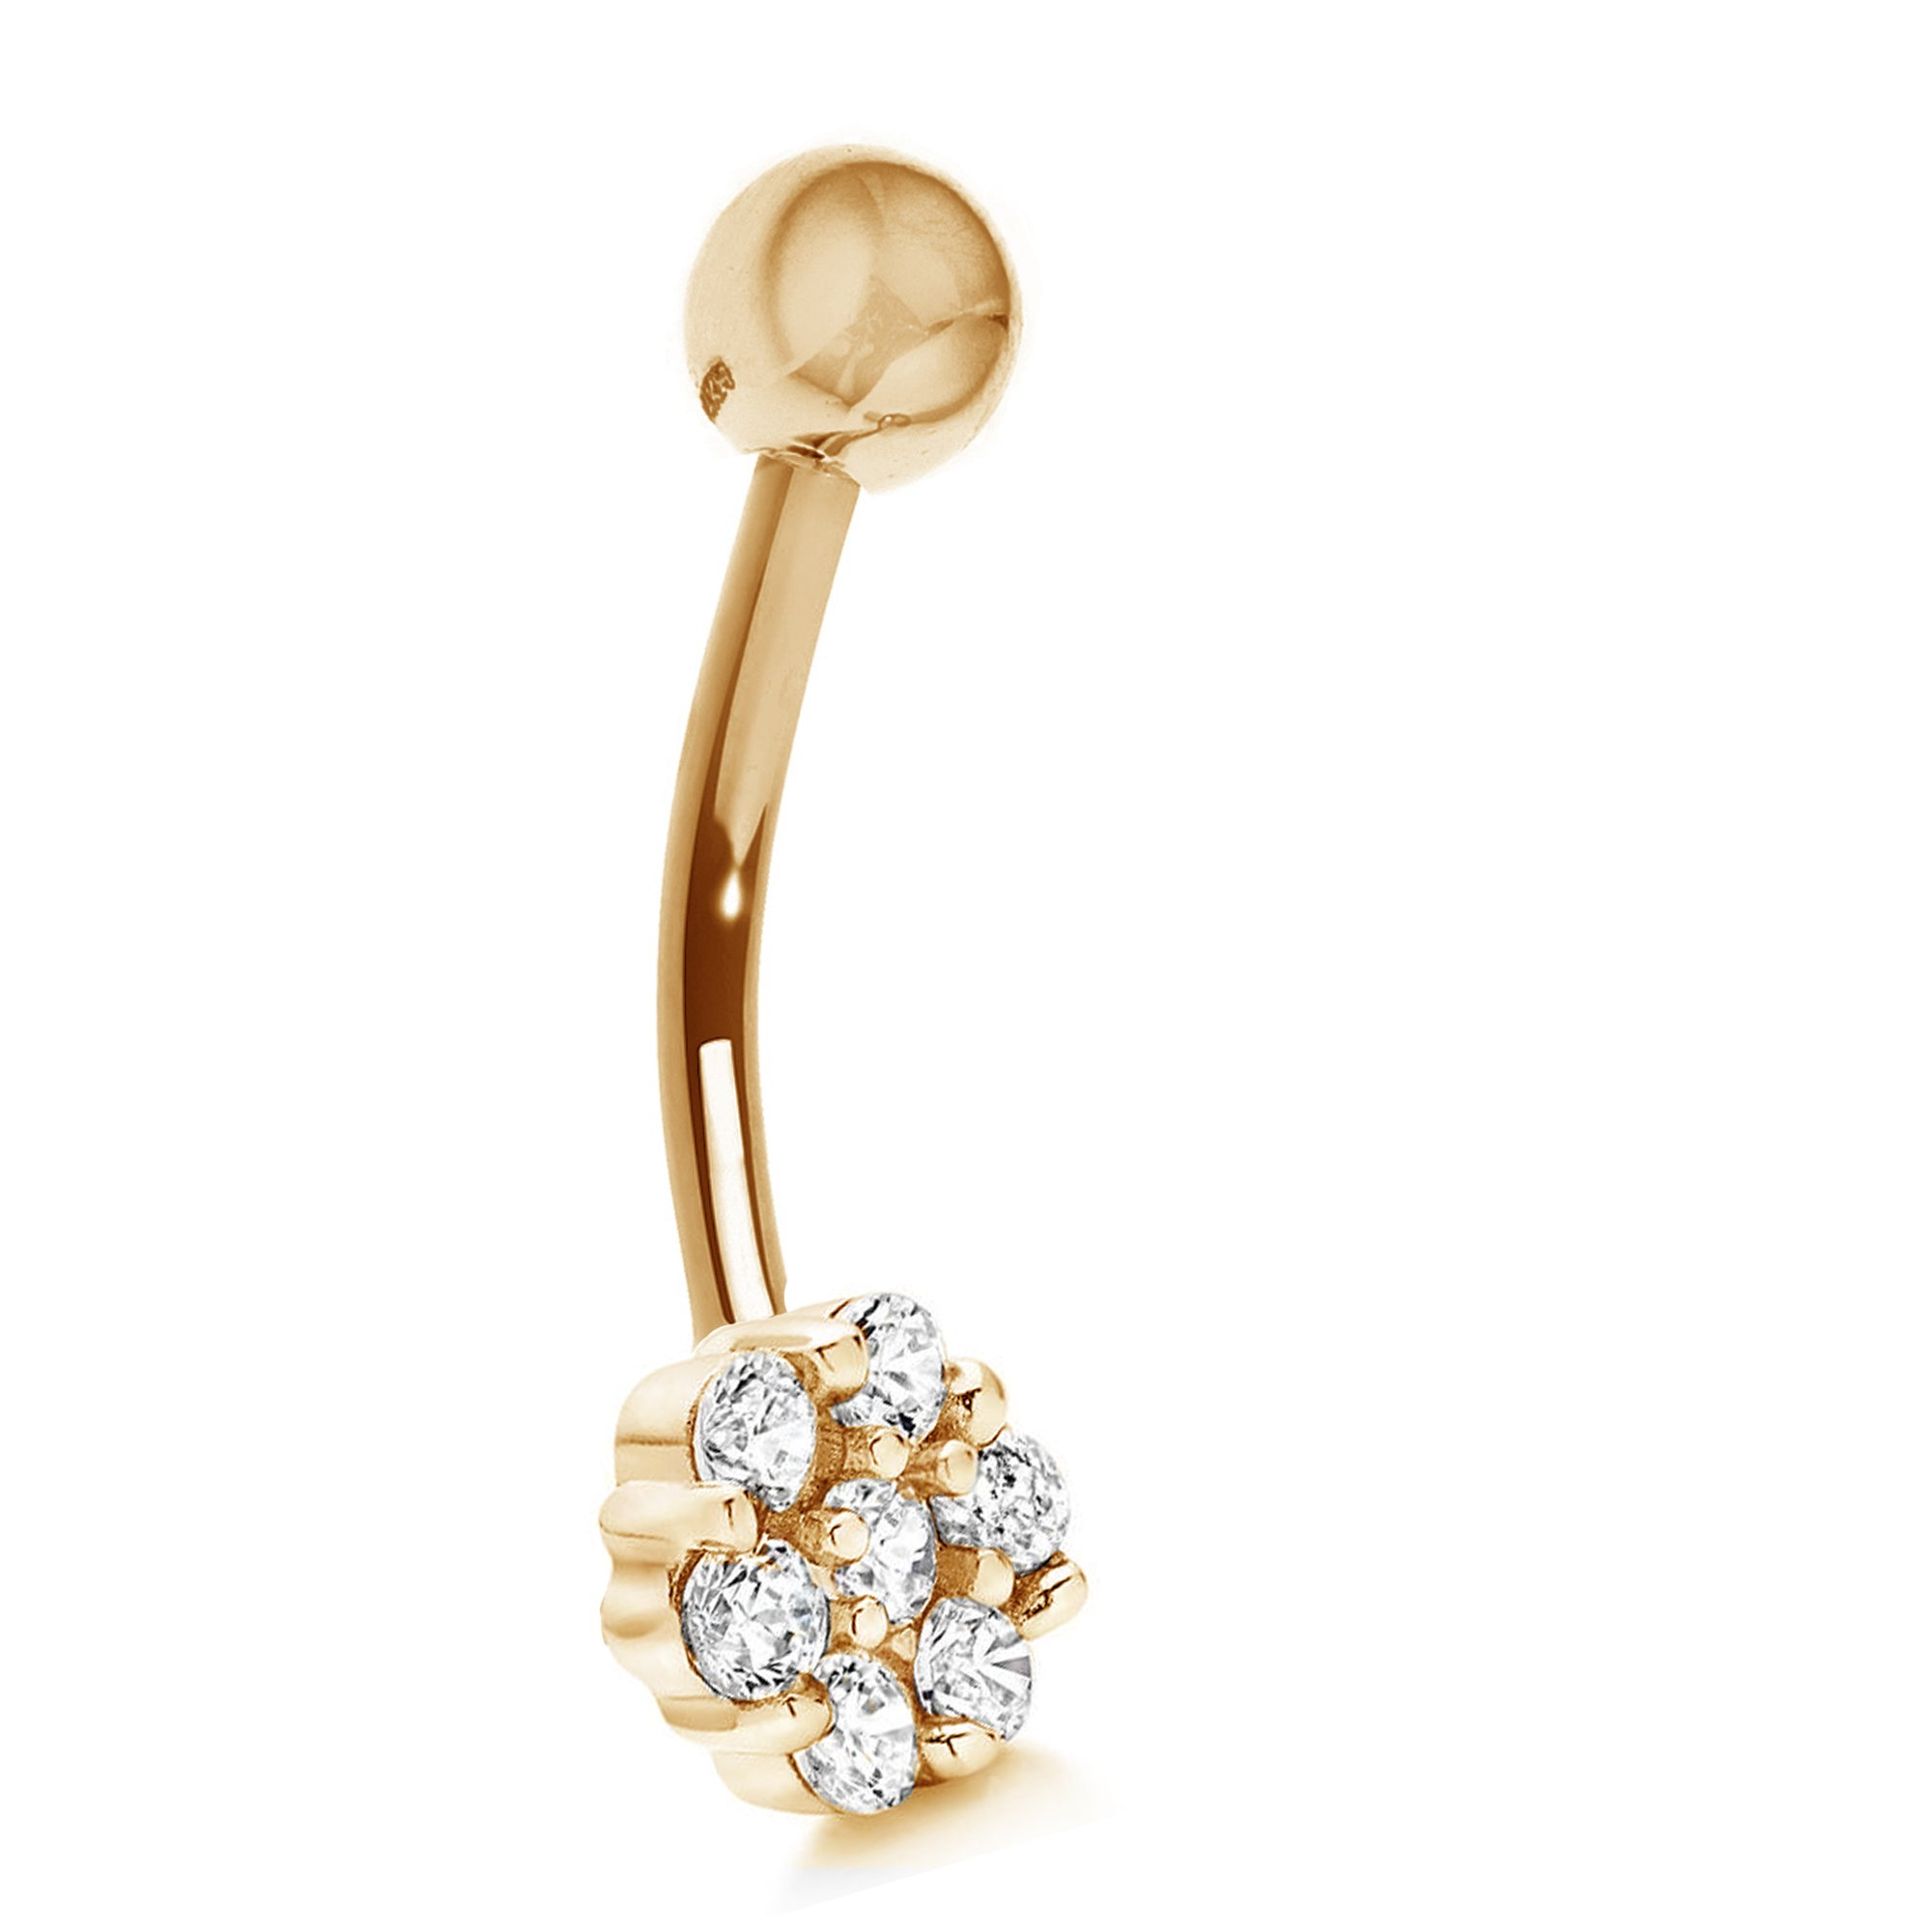 Ritastephens 14k Yellow Gold Cubic Zirconia Flower Belly Button Navel Ring by Ritastephens